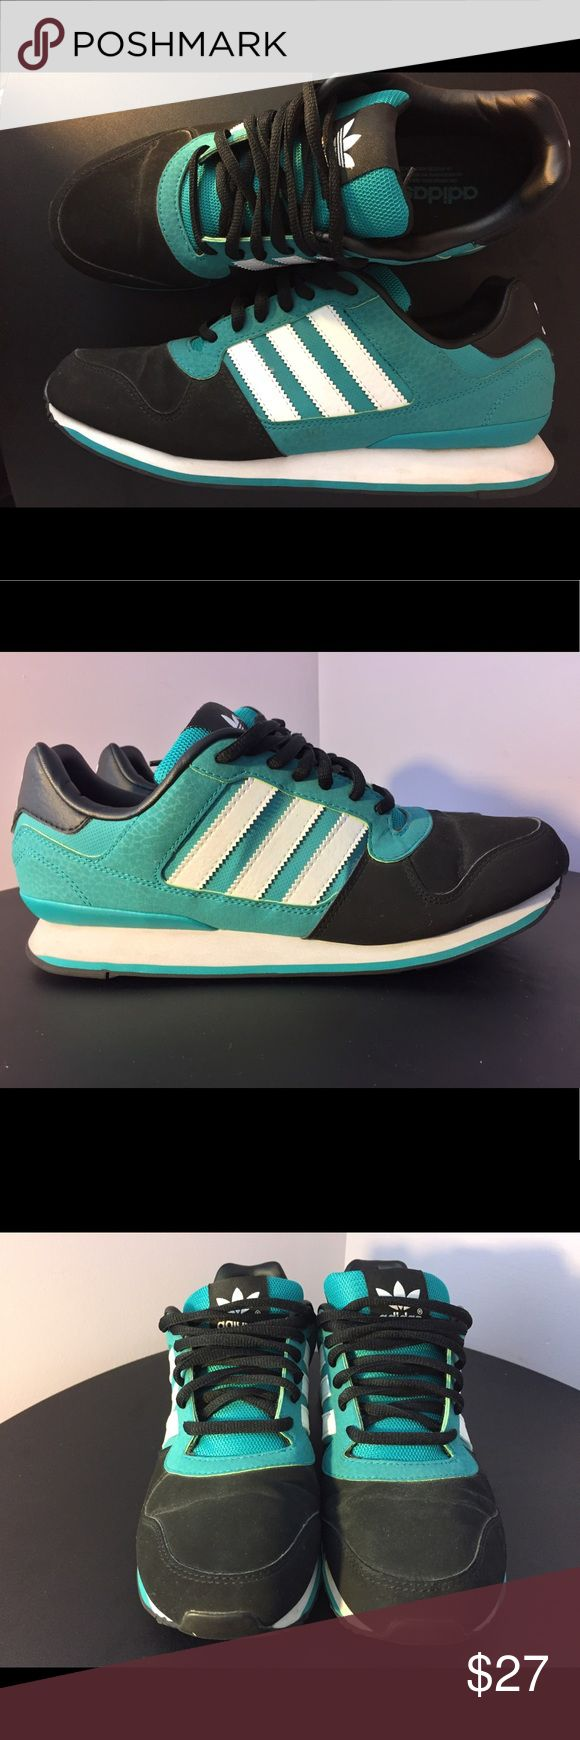 Adidas ZXZ Sneakers SIZE: Mens 9.5, Womens 11 CONDITION: Great condition, worn 2x SPECS: Upper includes leather-suede-mesh, comfortable rubber sole adidas Shoes Sneakers